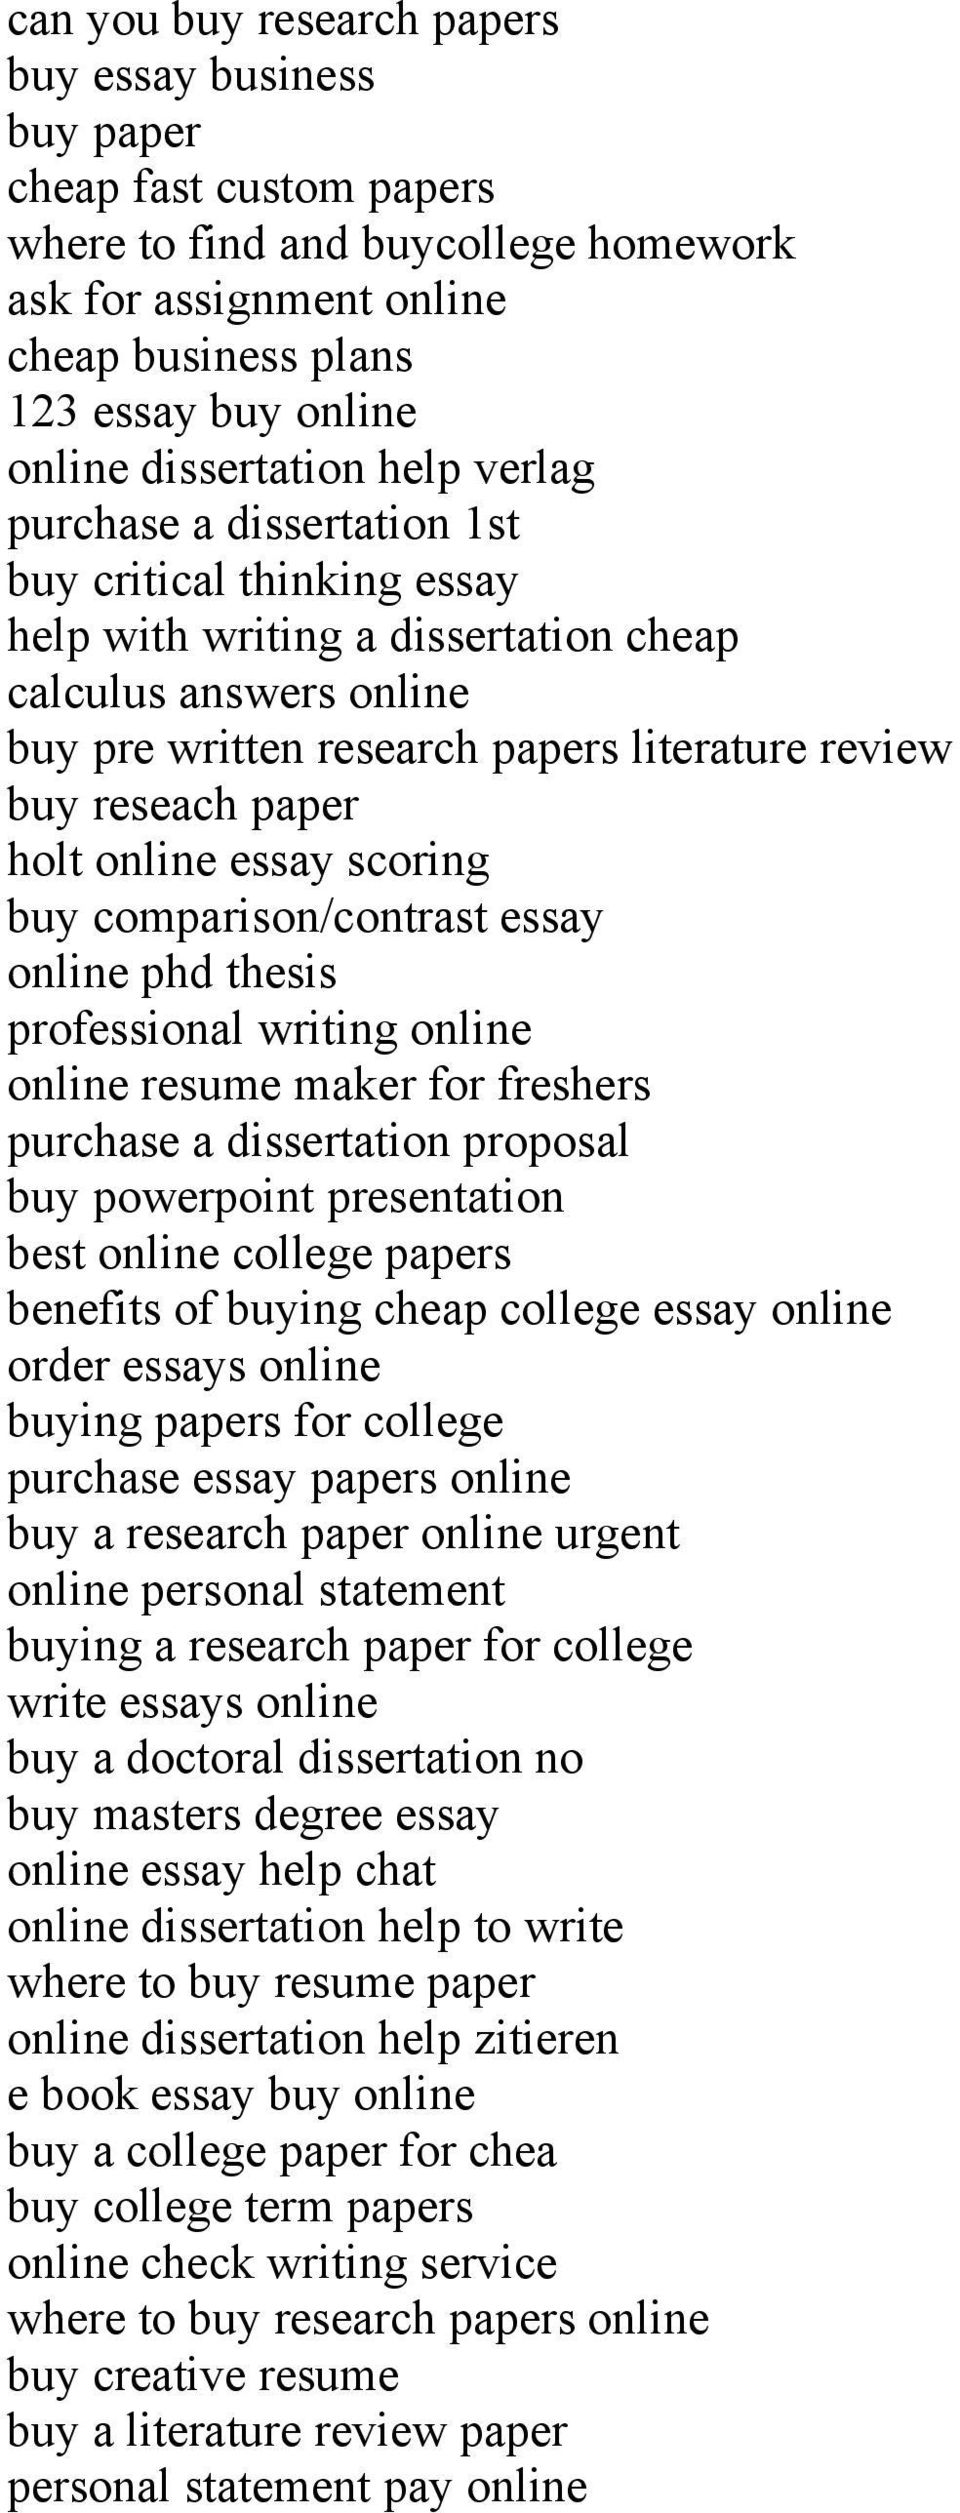 reseach paper holt online essay scoring buy comparison/contrast essay online phd thesis professional writing online online resume maker for freshers purchase a dissertation proposal buy powerpoint